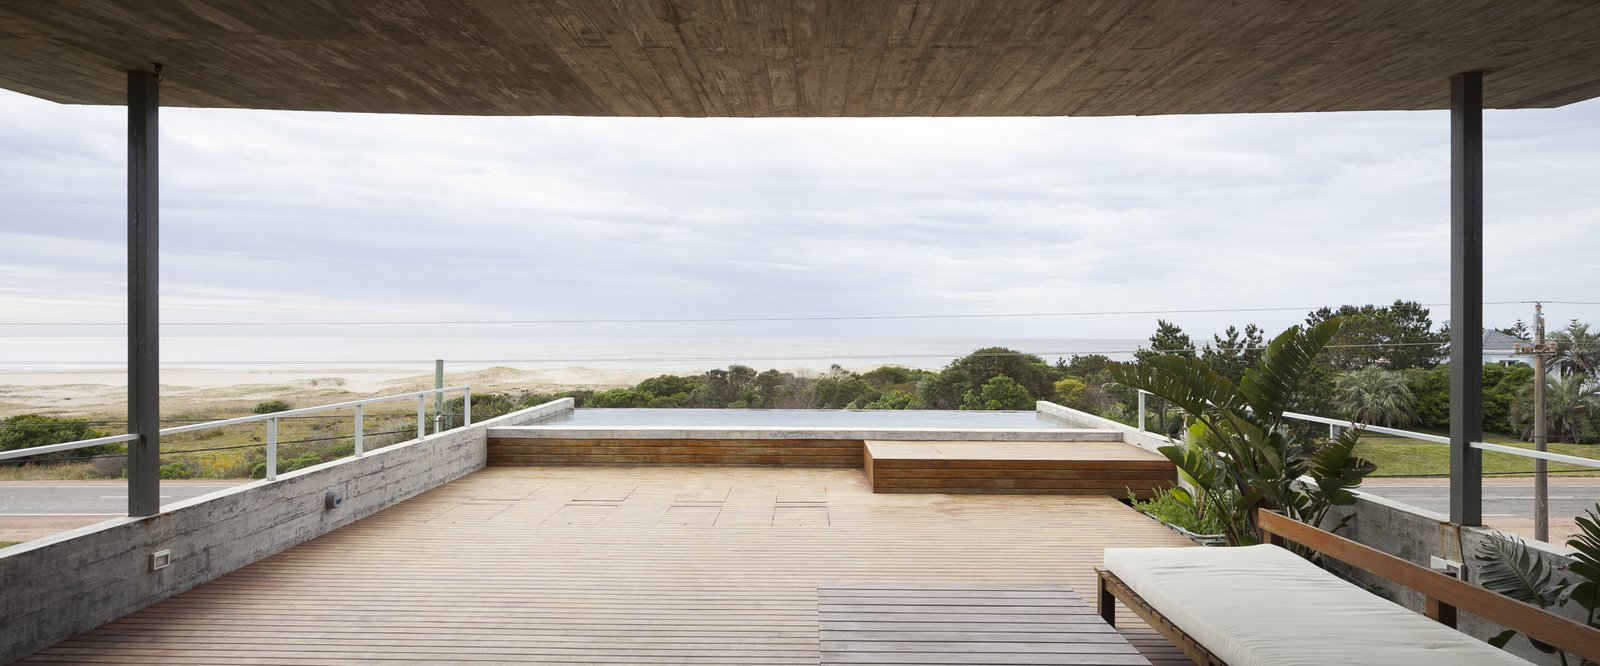 Outdoor, Large, Decking, Large, Wood, Infinity, and Concrete The third level can be totally opened up to fuse indoor and outdoor space.  Best Outdoor Decking Large Photos from A Concrete Abode in Uruguay Embraces its Beachfront Setting